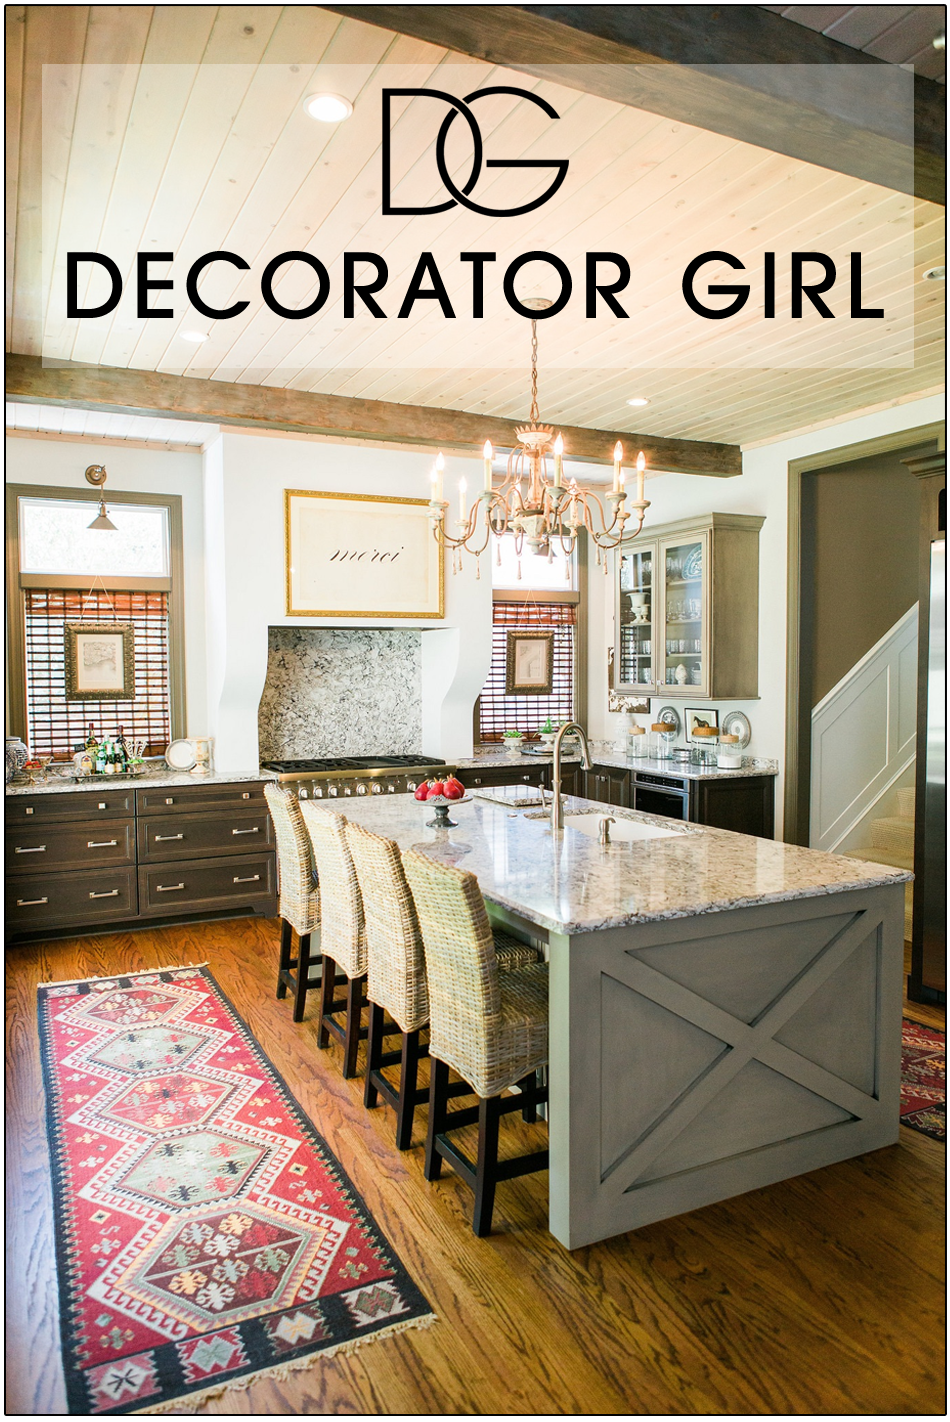 Decorator Girl is an interior decorator located in the Northern Florida area near Jacksonville and Fleming Island. Design, designer, interior, interior decorator, decorator, Jacksonville, Fleming Island, Florida, redesign, home stylist,home staging, space planning, color consultant, remodel, remodeling. (904)476-6460 liz@decoratorgirl.com